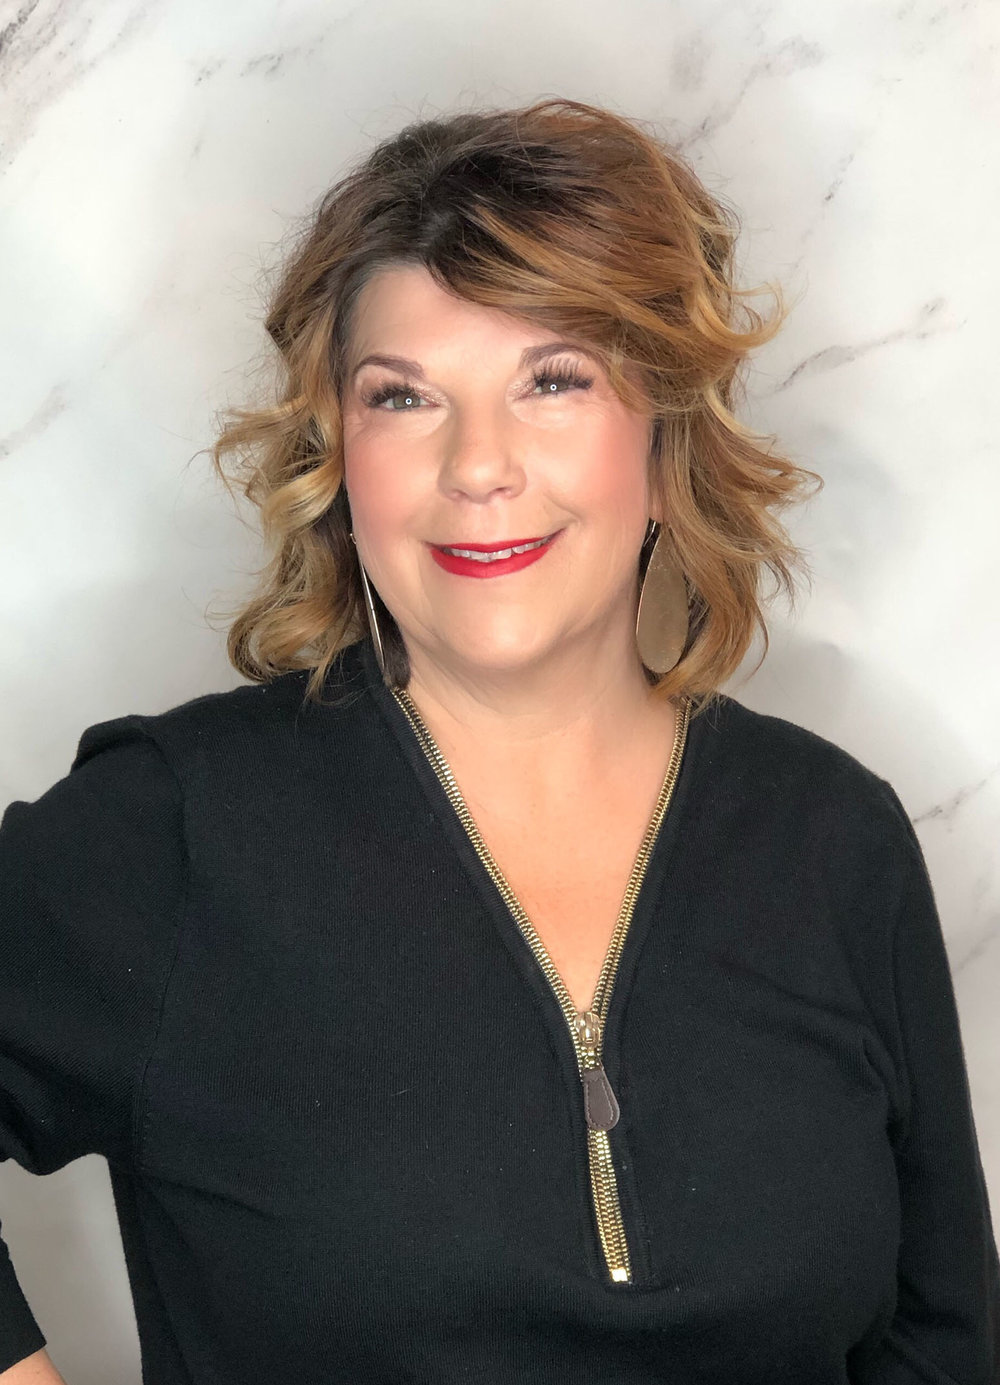 Jenny is the salon manager at Fringe. Customer service is her middle name. She will greet you with a friendly smile and help you with any hair care needs. Come in for a tour and she will have a fresh cup of coffee brewing.